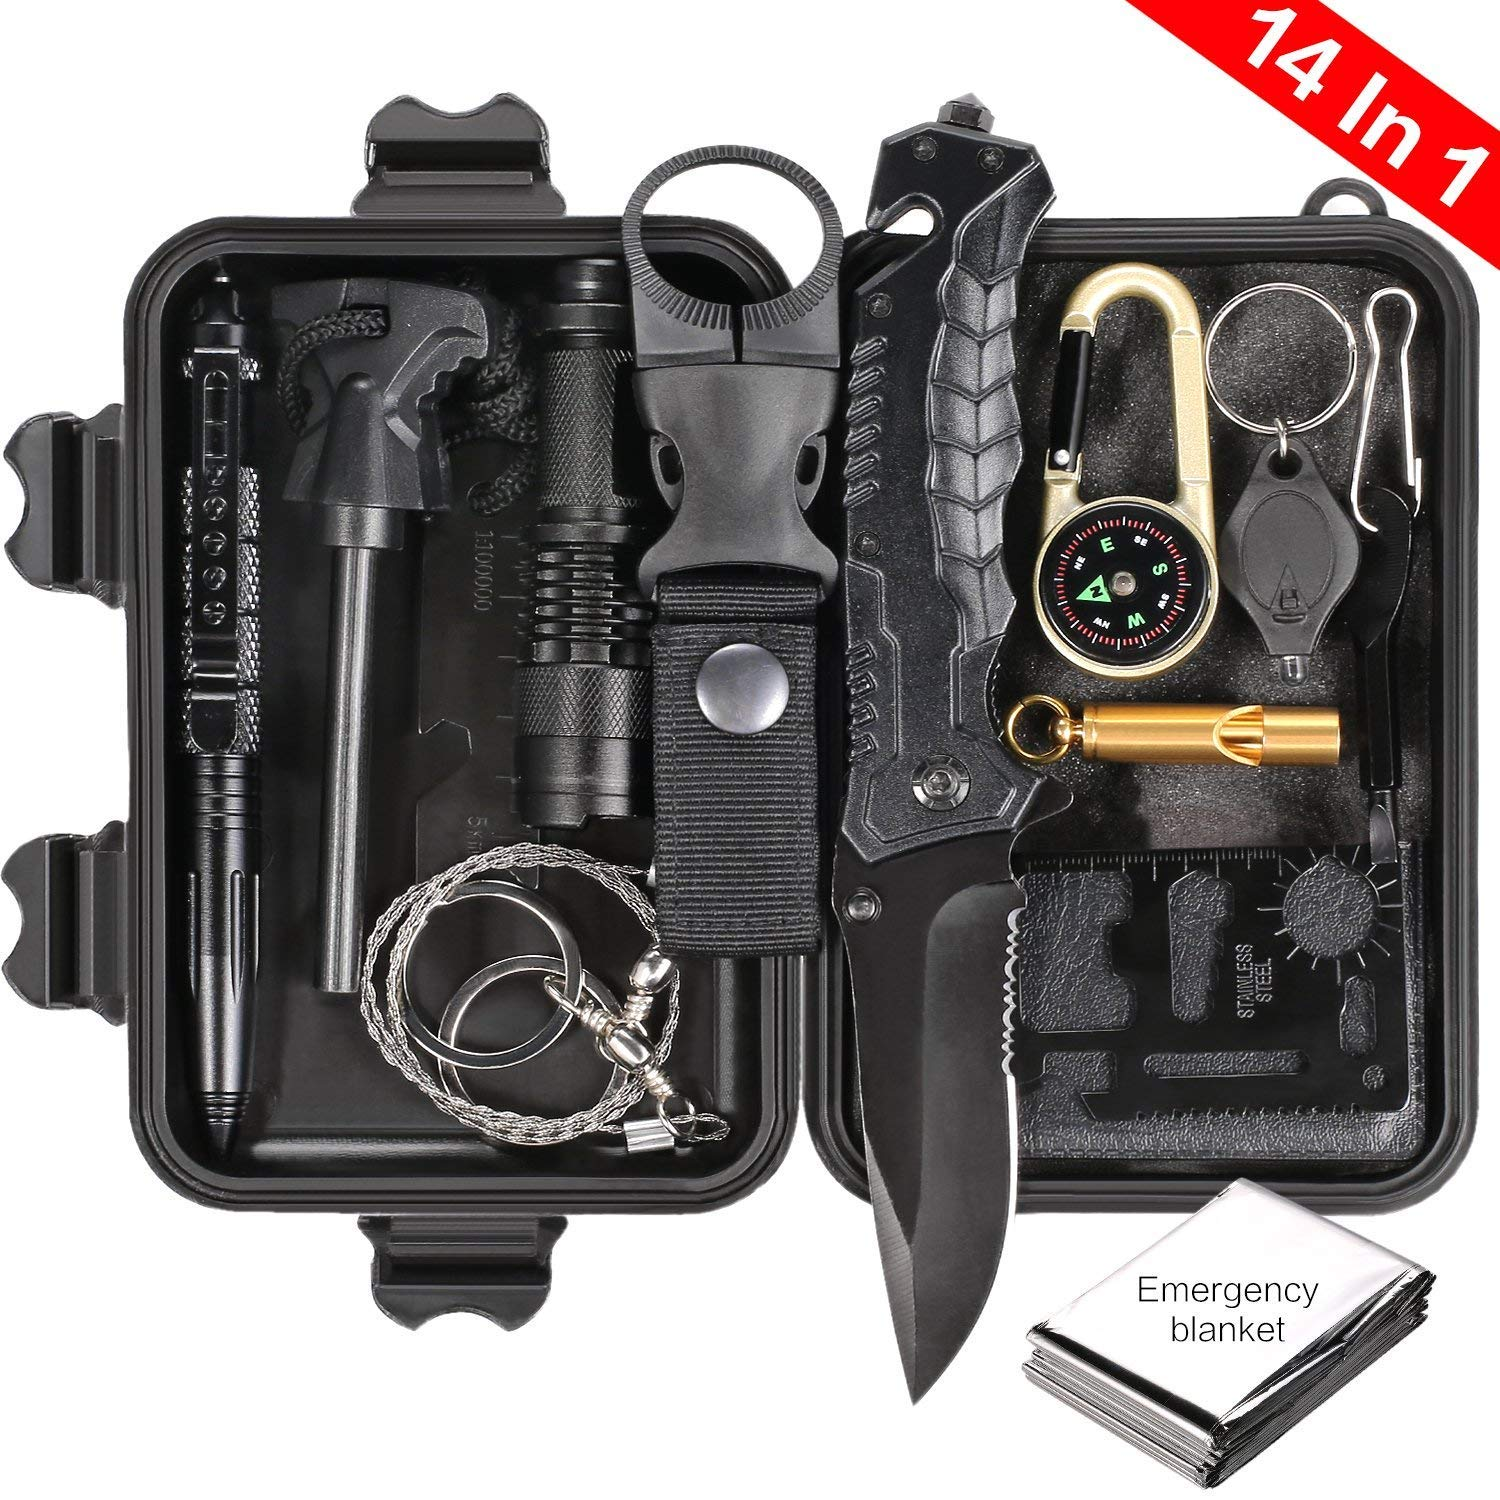 Review of Puhibuox Survival Gear Kit, EDC Outdoor Emergency Tactical Survival Tool for Cars, Camping, Hiking, Hunting, Adventure Accessories